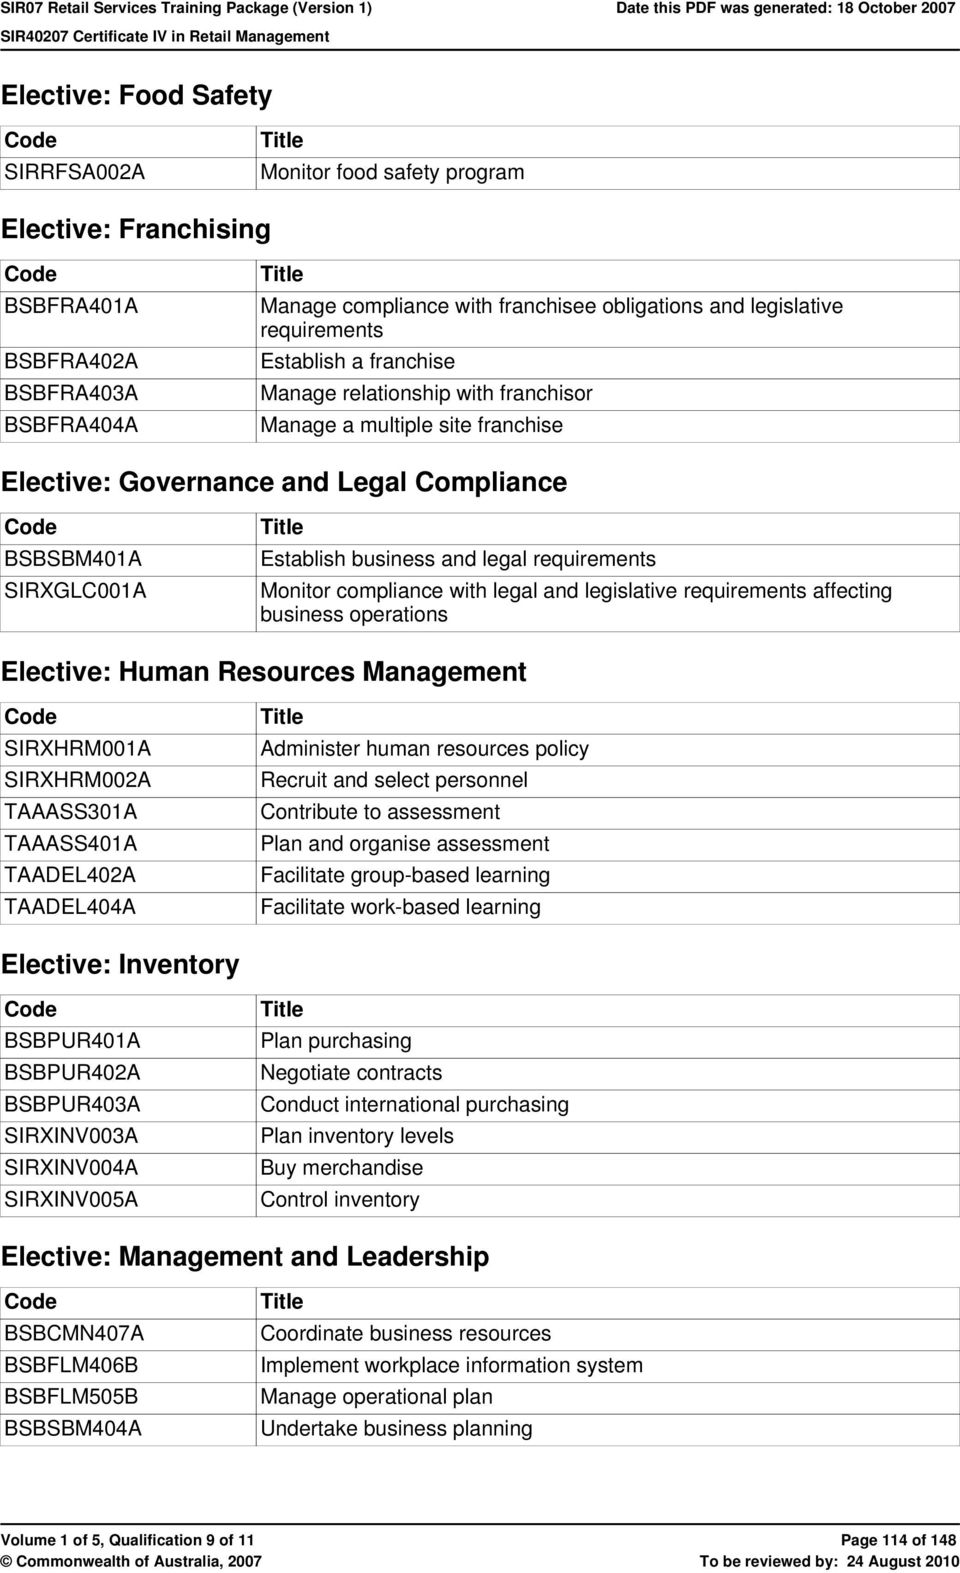 requirements Monitor compliance with legal and legislative requirements affecting business operations Elective: Human Resources Management SIRXHRM001A SIRXHRM002A TAAASS301A TAAASS401A TAADEL402A